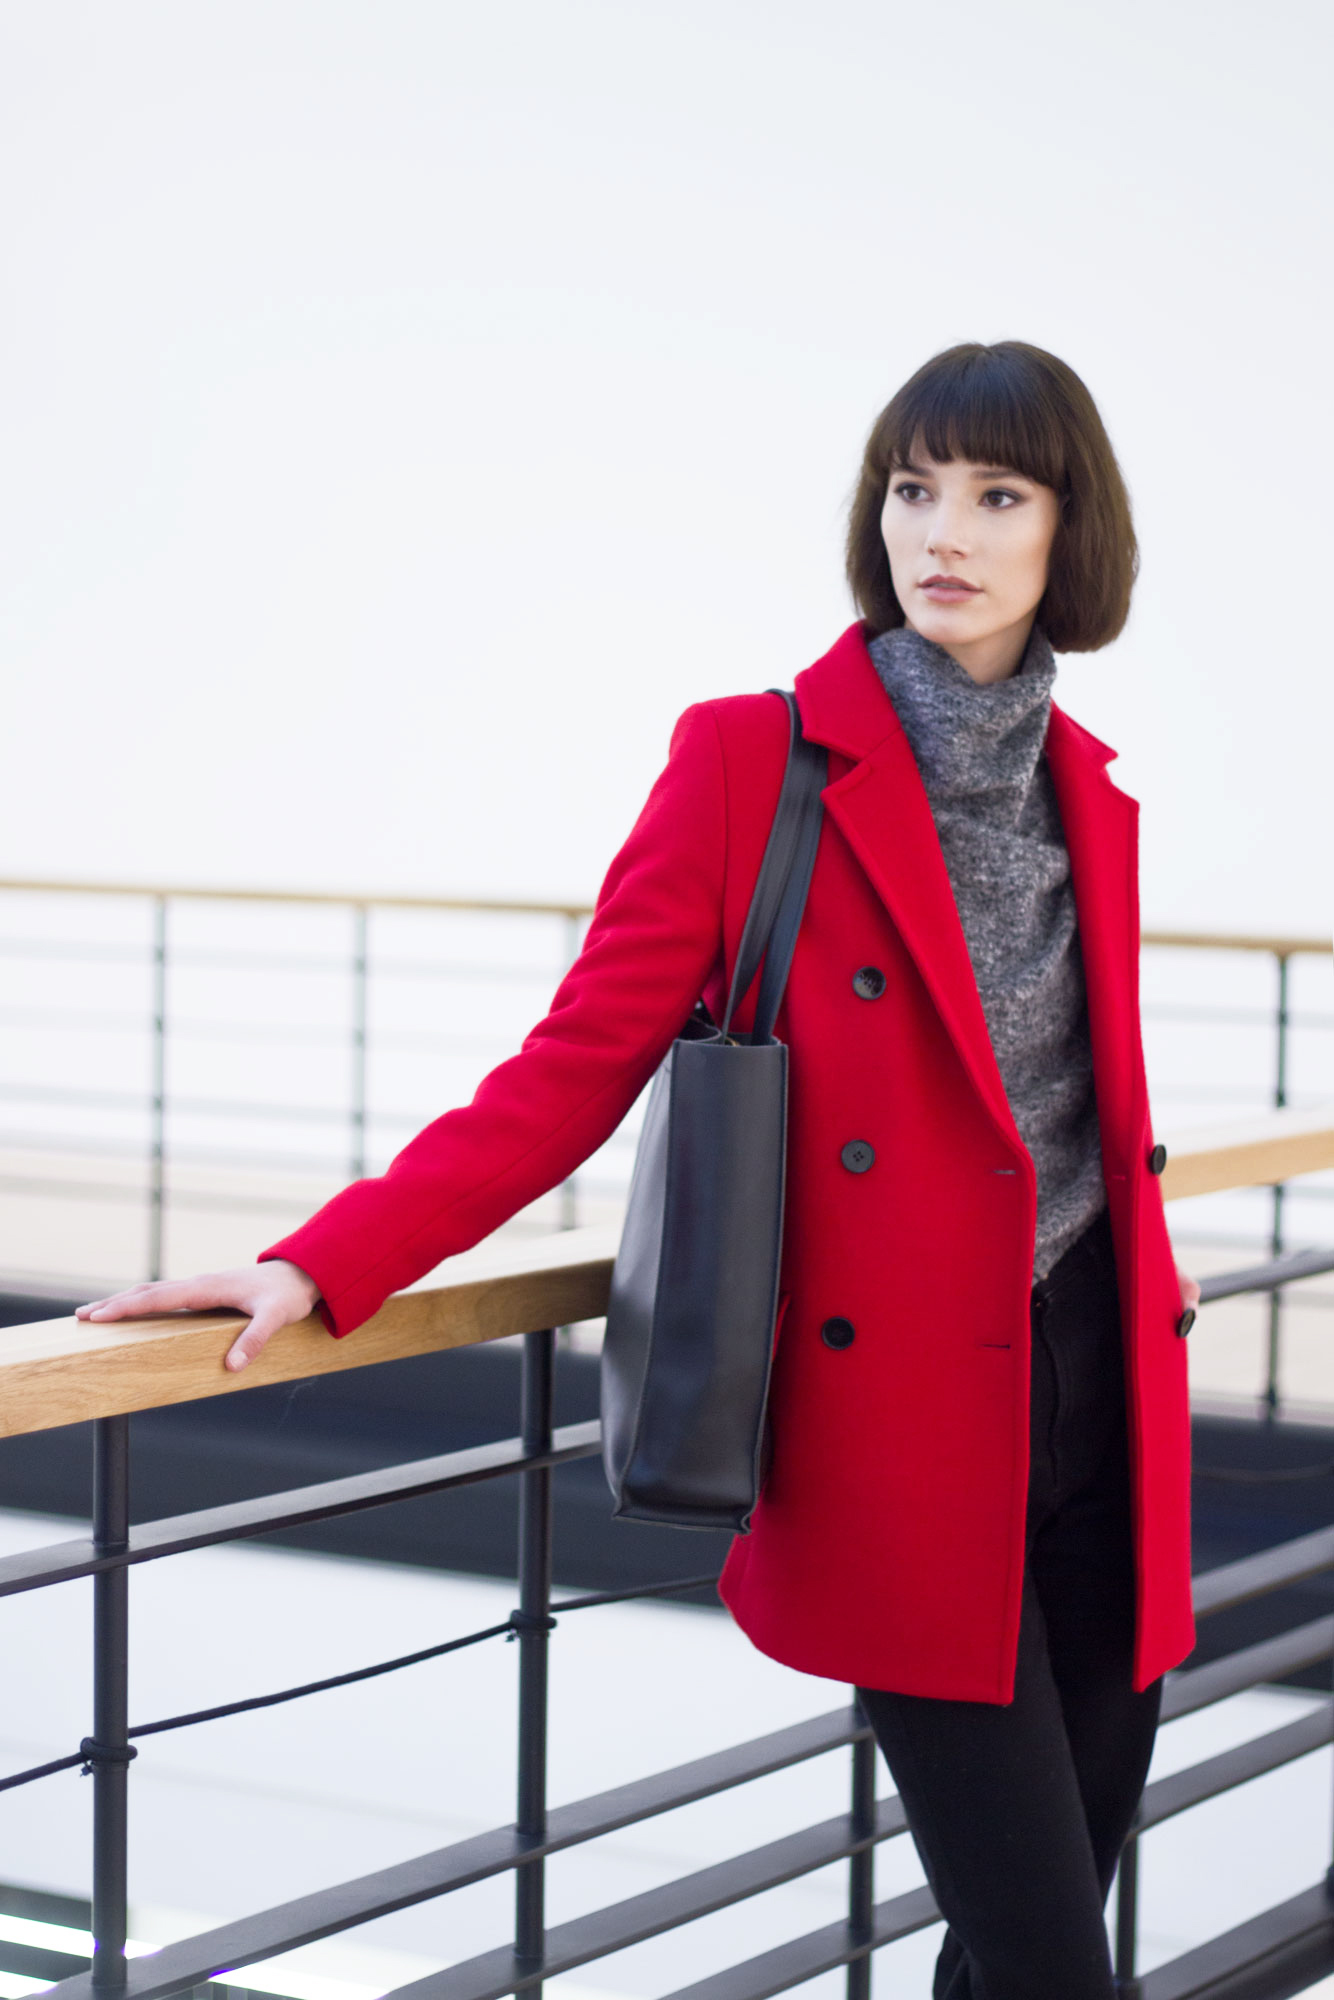 Fiery red autumn and winter coat Joana made from high quality wool and poliamyde mix to keep you warm even in the coldest of days.